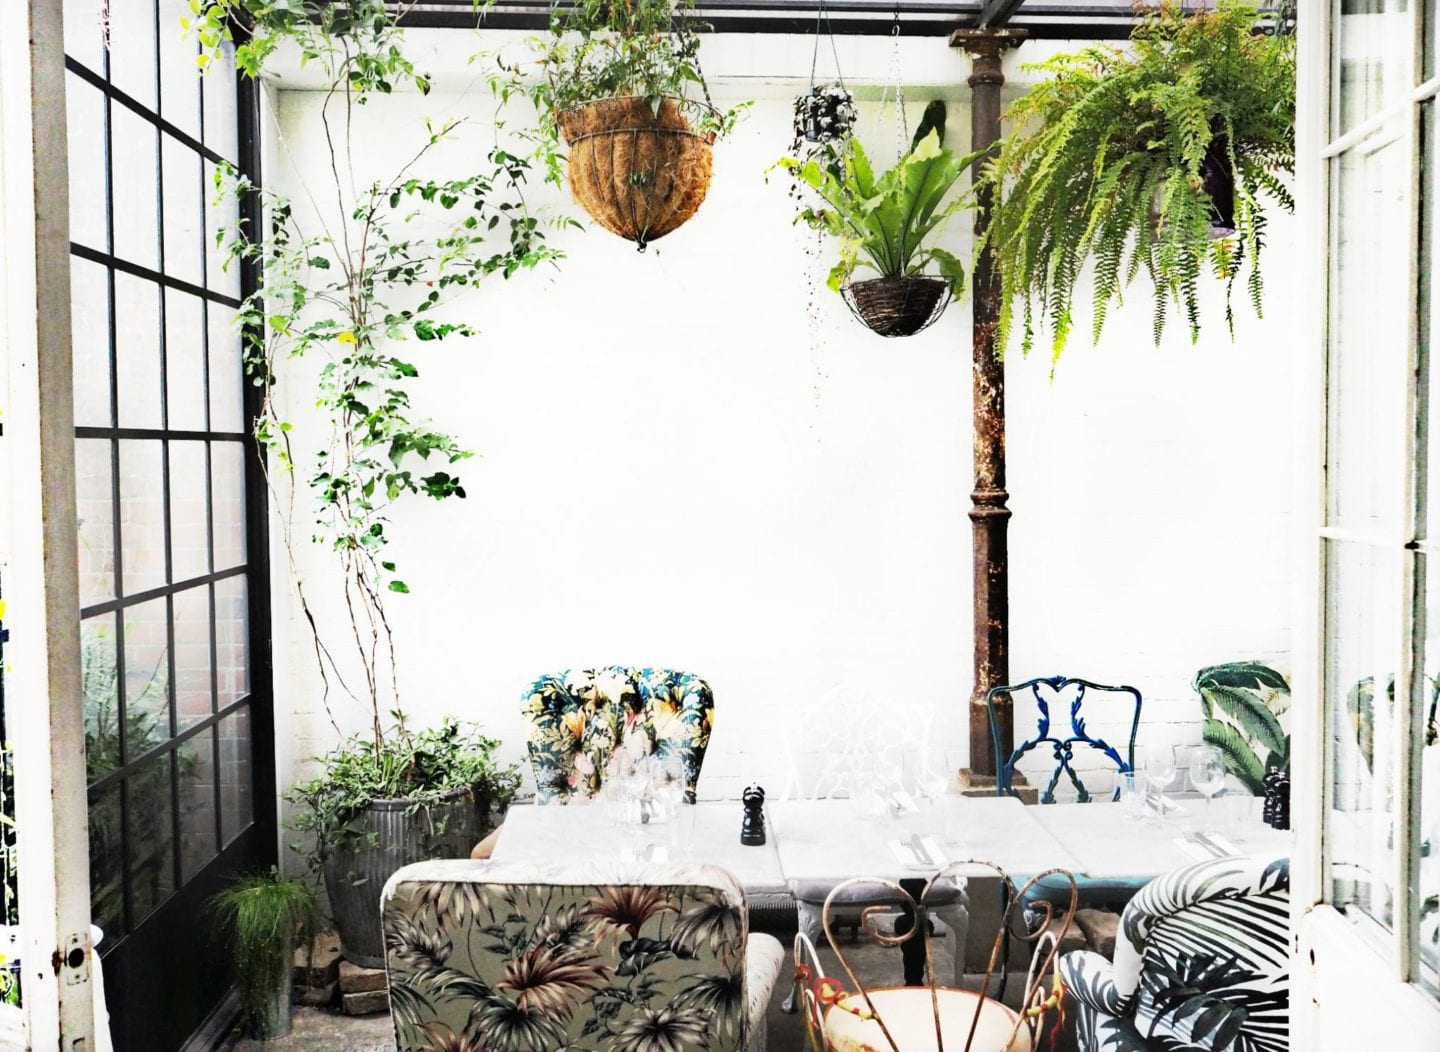 Bourne-Hollingsworth-green-hanging-plants-and-white-brick-walls